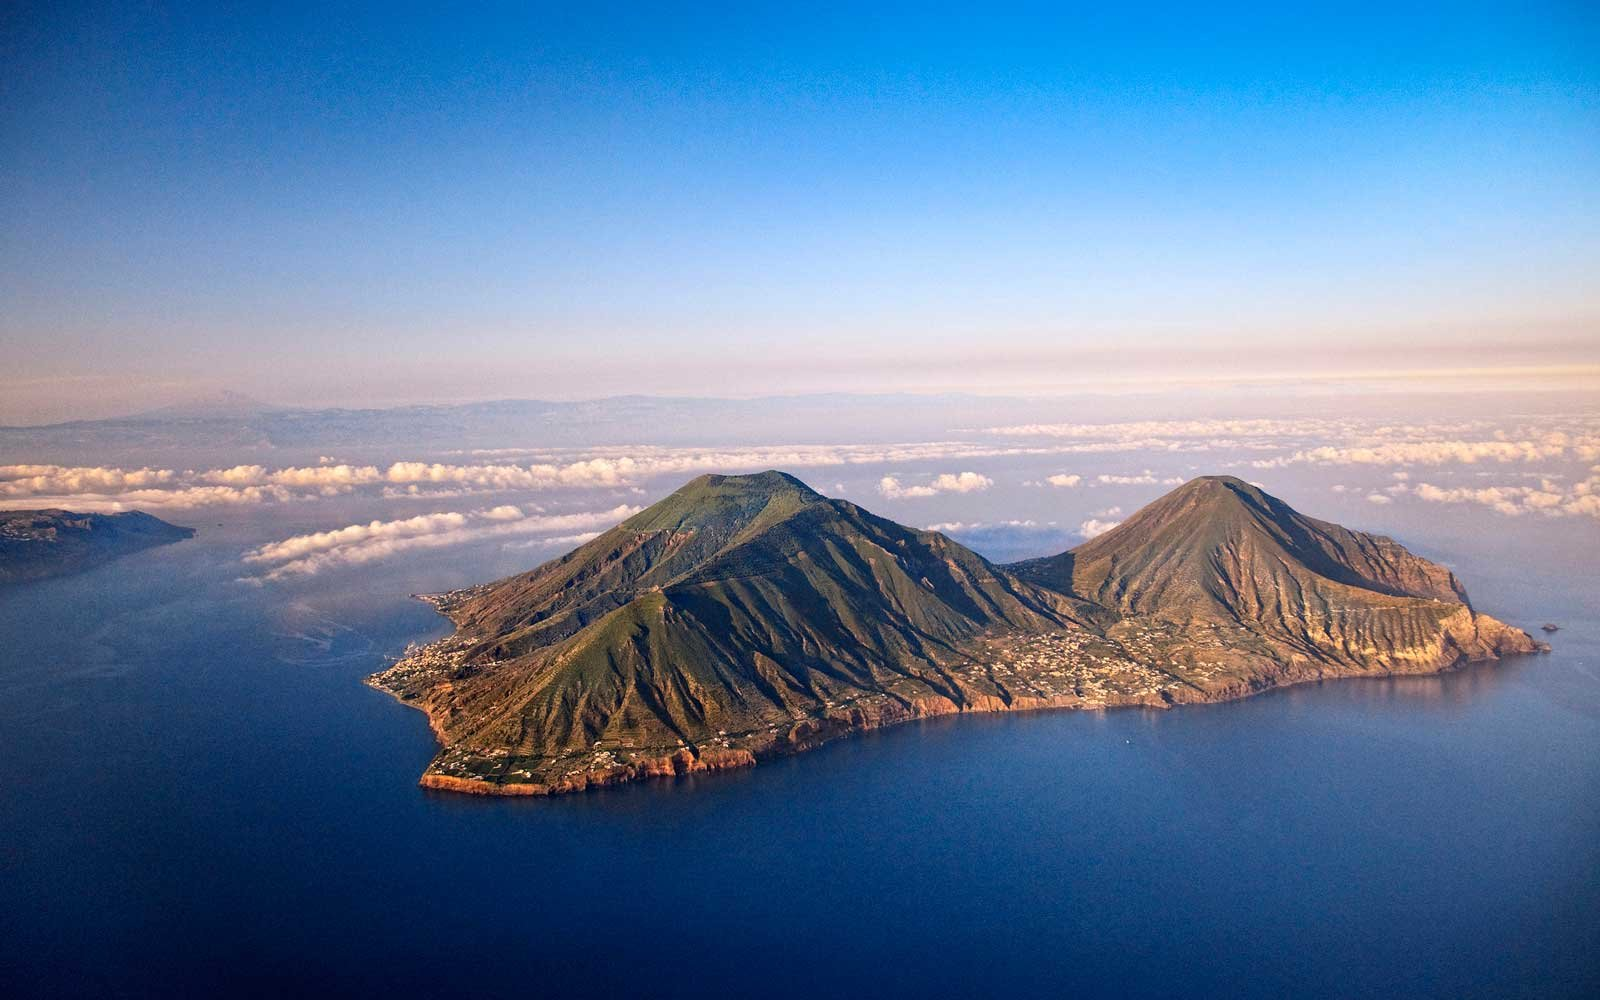 Aerial view of Salina, one of Italy's Aeolian Islands